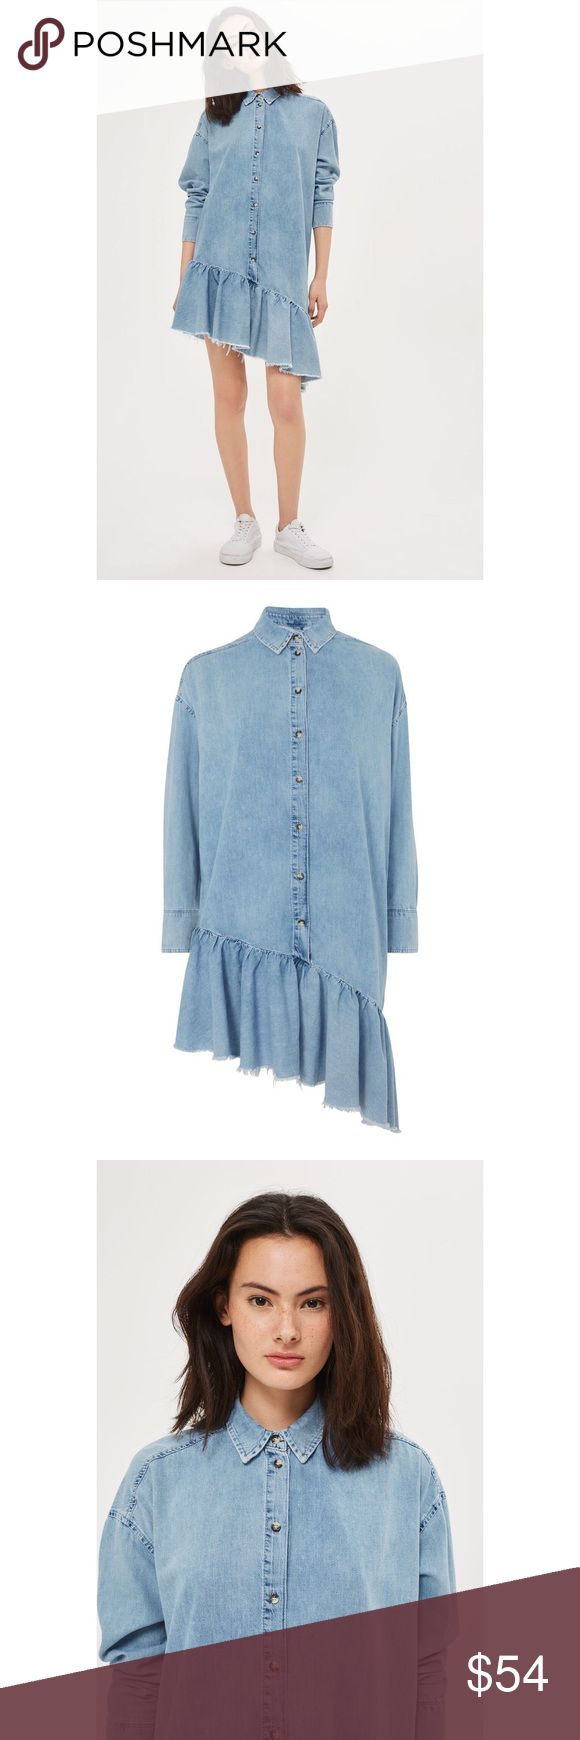 """{Topshop} MOTO Denim Asymmetric Shirt Dress Re-work your denim wardrobe with our innovative denim shirt dress. In a light wash, this long sleeve style features tortoiseshell button closures through the front, buttoned cuffs and a stand-out asymmetric frill hem. Style it with your favourite lifestyle trainers for casual days. 100% Cotton. Machine wash. Full fit. Approx length: 32"""" - 38"""". Location: B1 Topshop Dresses Asymmetrical"""